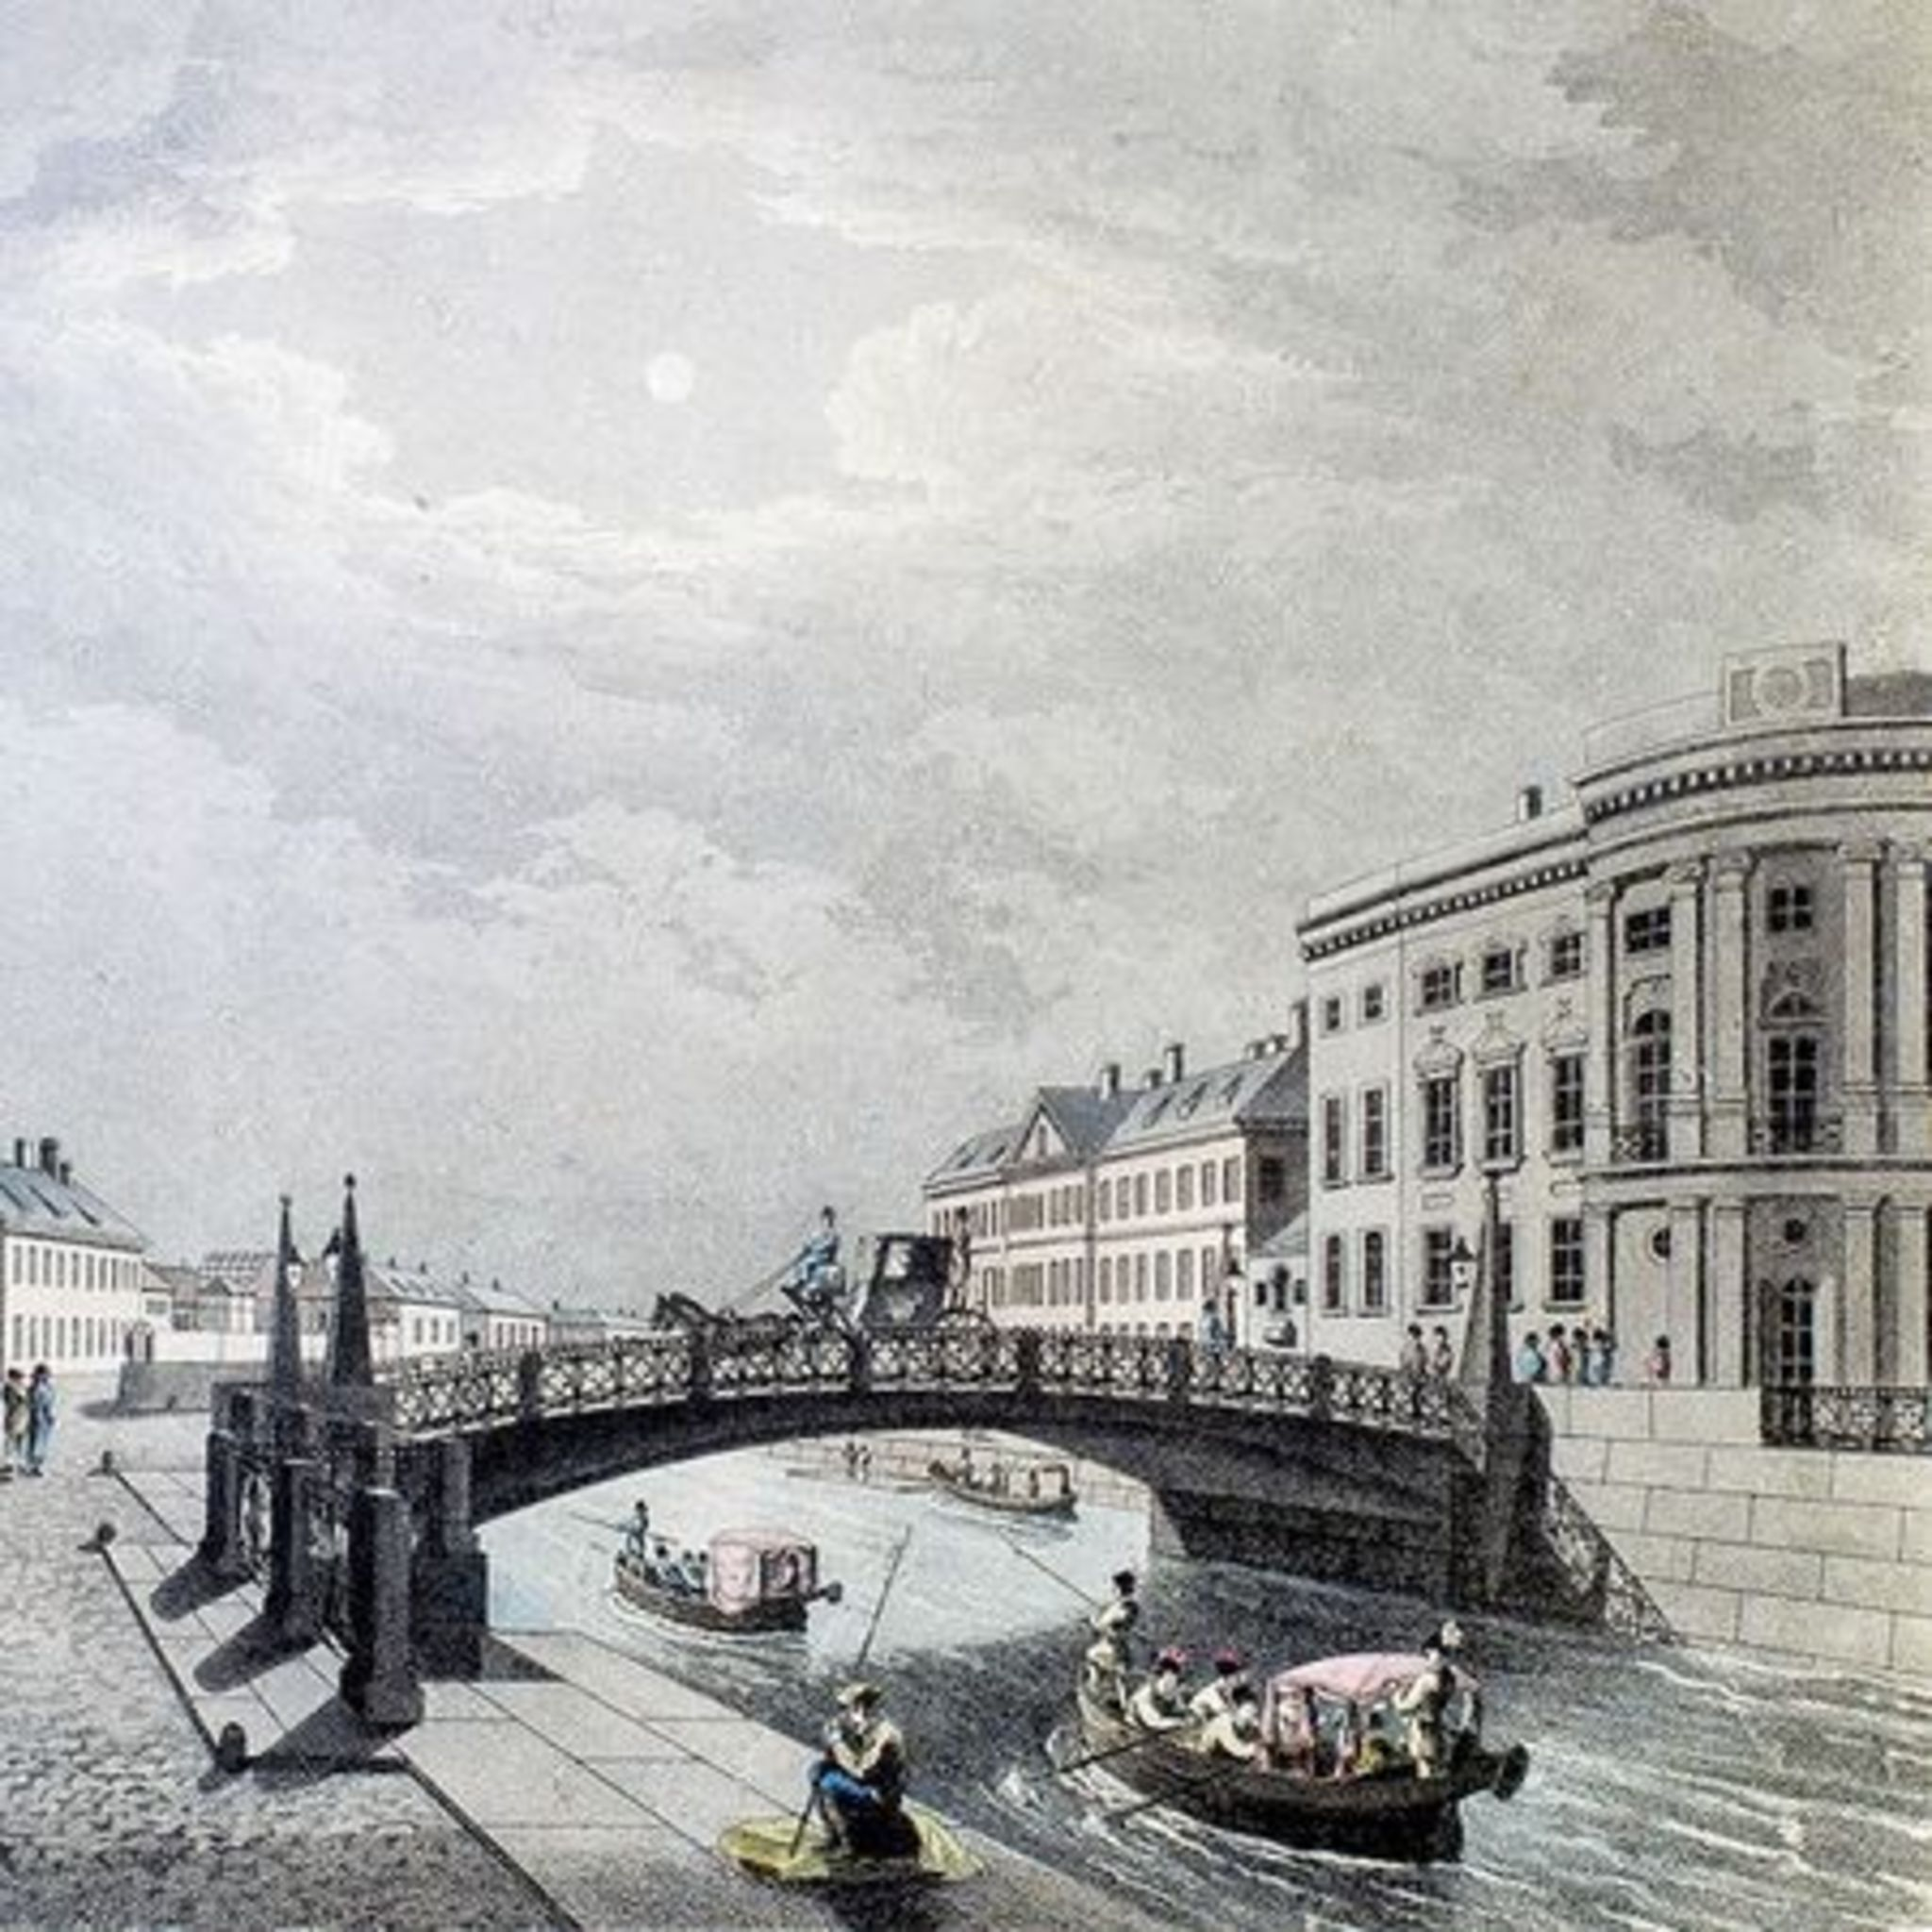 Lecture Let's go along the Moika …. Historical events on the banks and AS Pushkin